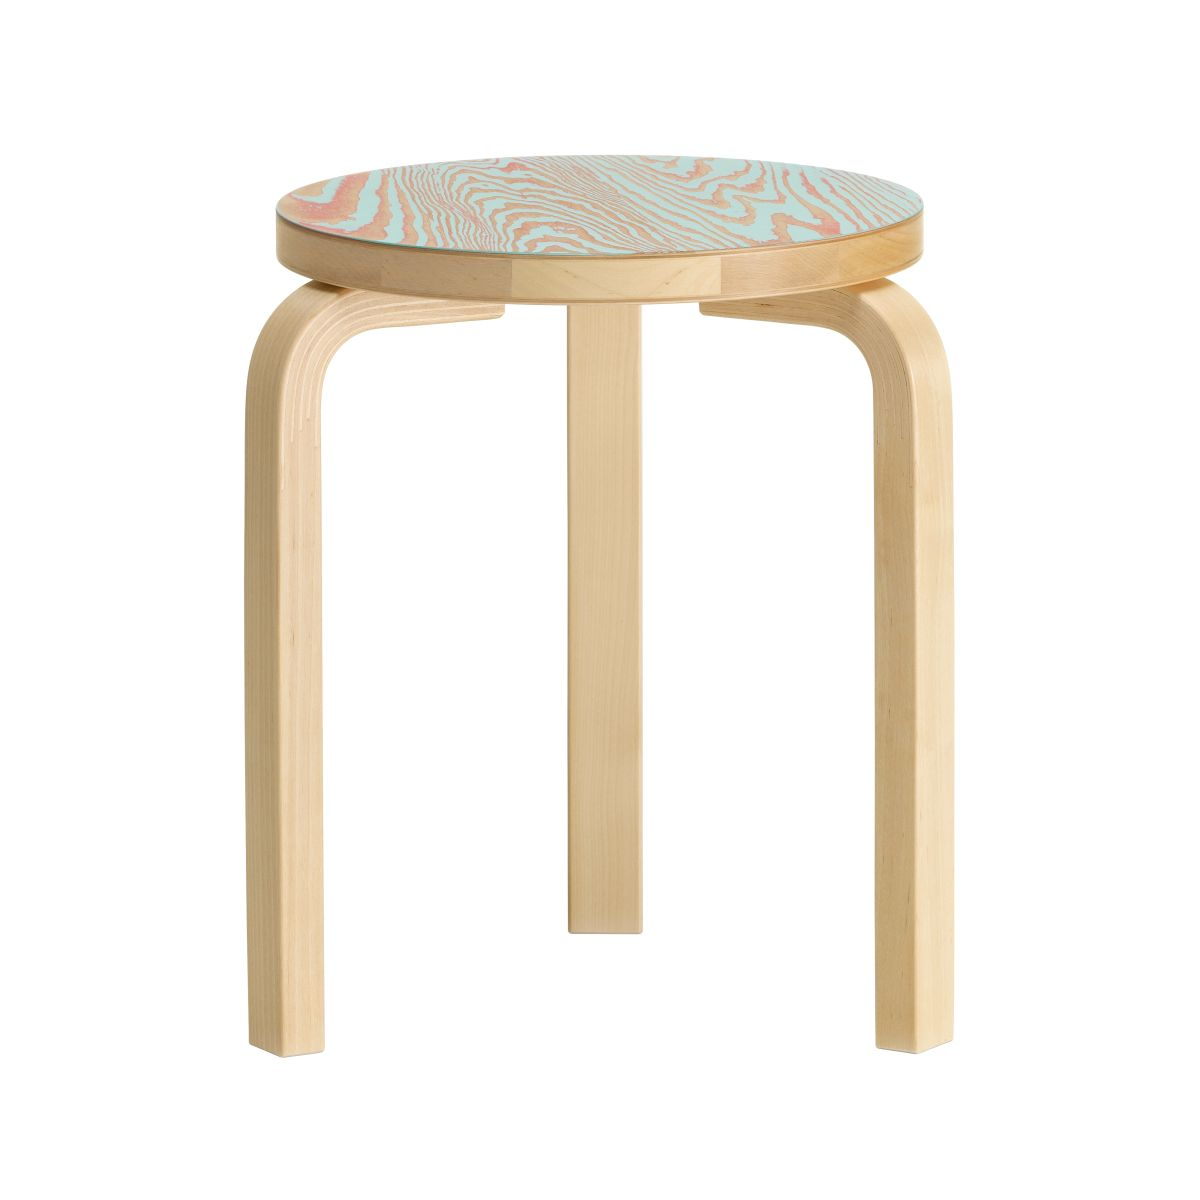 Stool-60-Colo Ring-red-turqouise_F-2665033